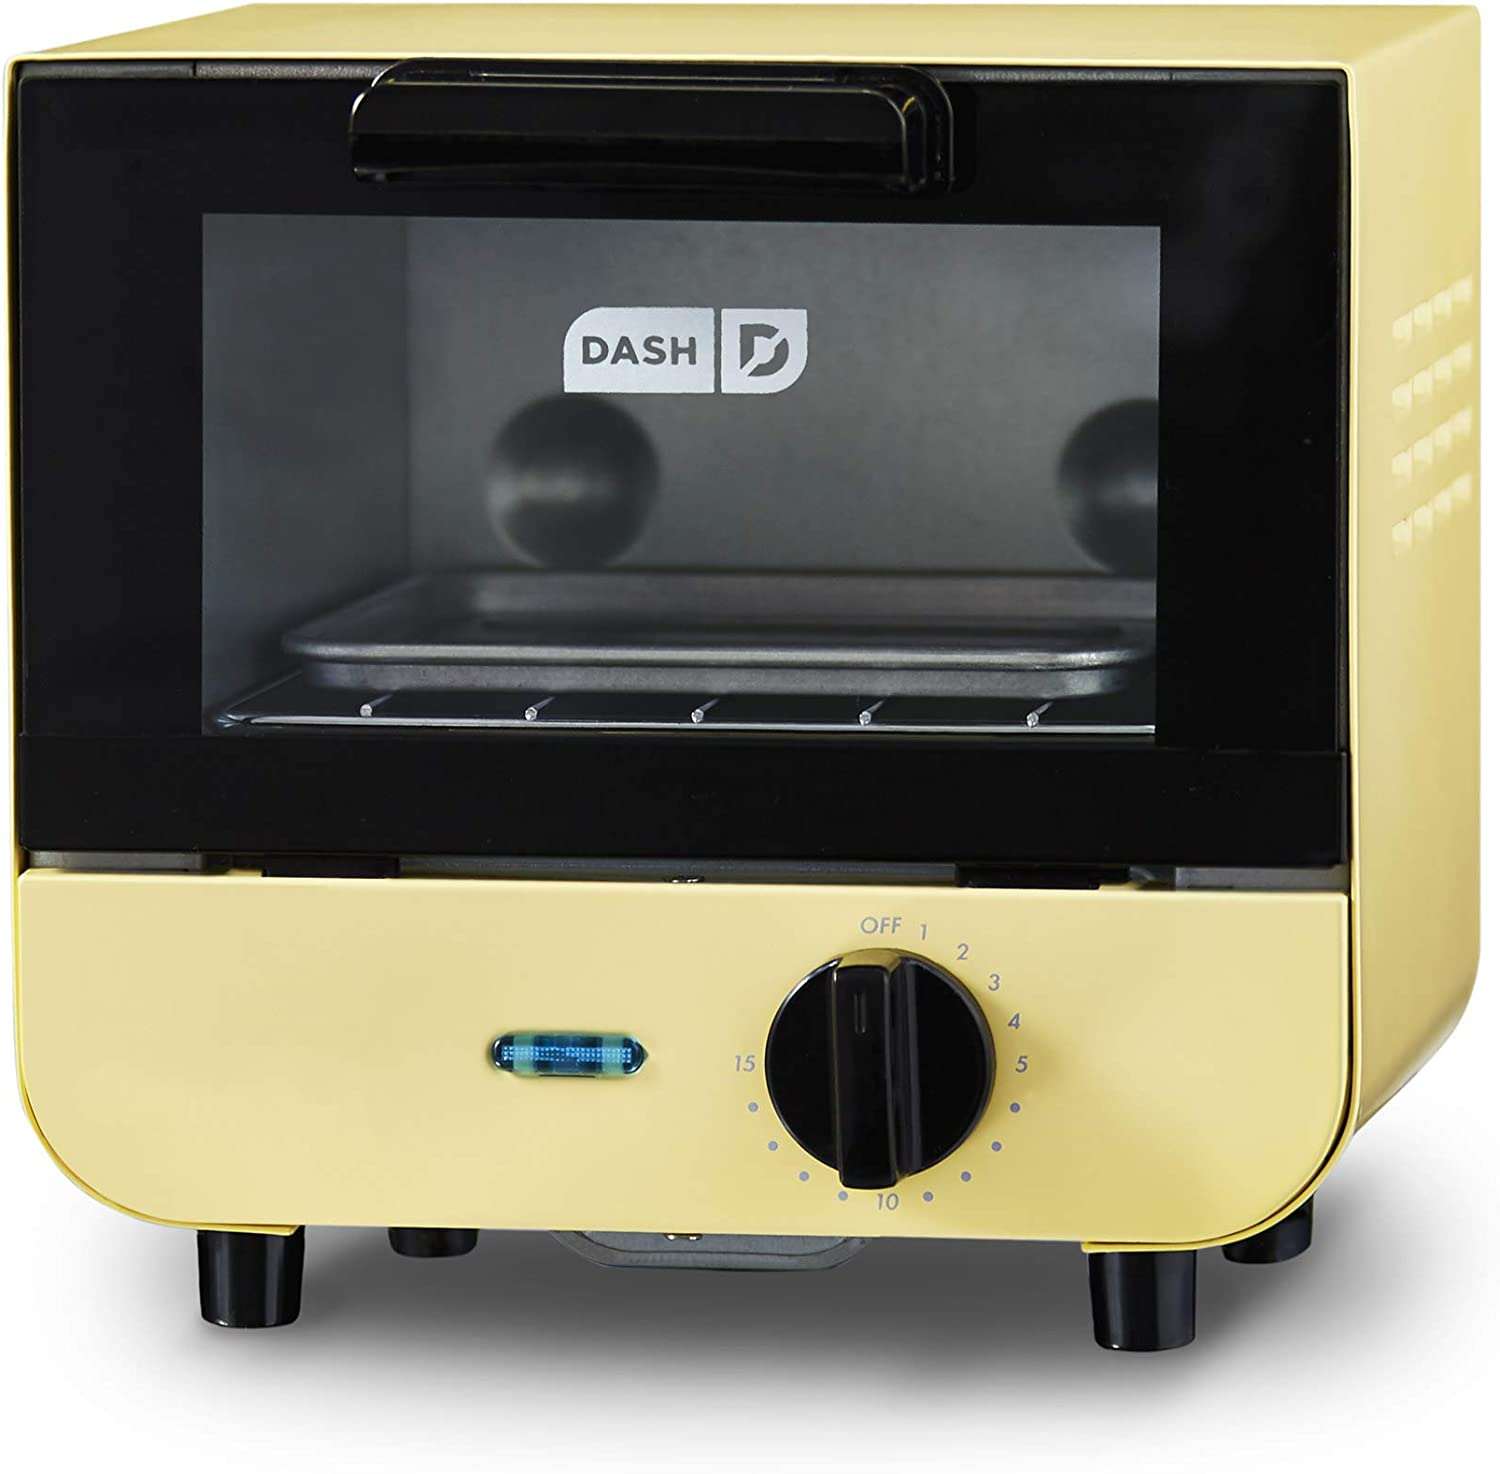 Dash DMTO100GBPY04 Mini Toaster Oven Cooker for for Bread, Bagels, Cookies, Pizza, Paninis & More with Baking Tray, Rack, Auto Shut Off Feature, Yellow (Renewed)